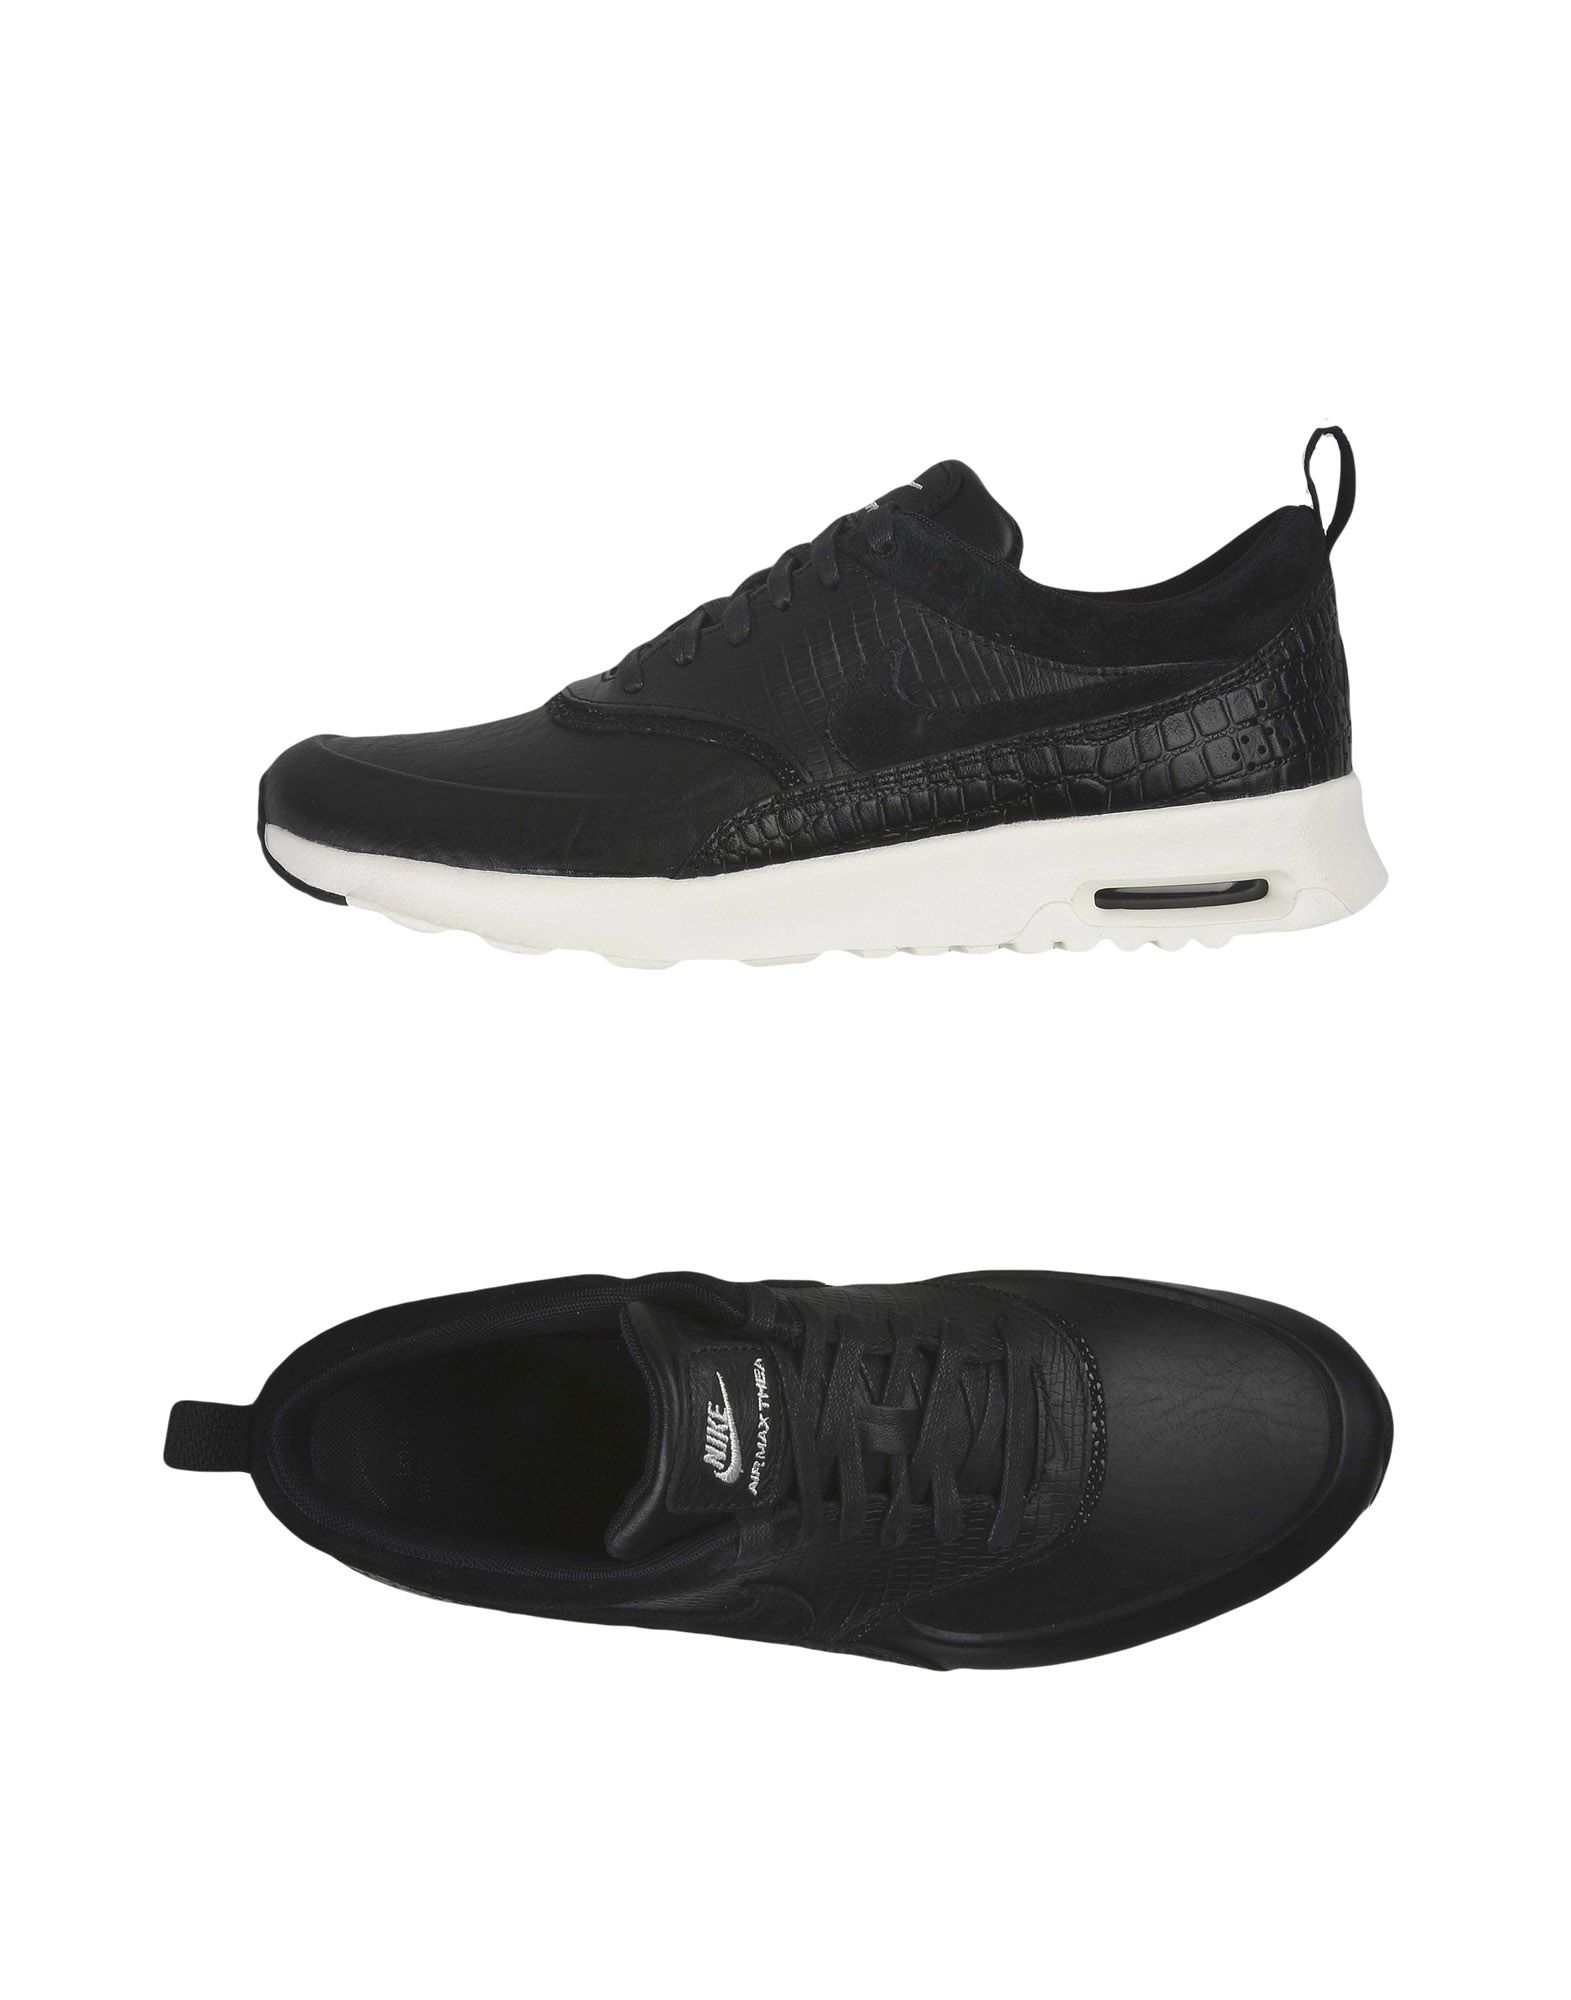 Sneakers Nike Air Max Thea Lux - Donna - Acquista online su